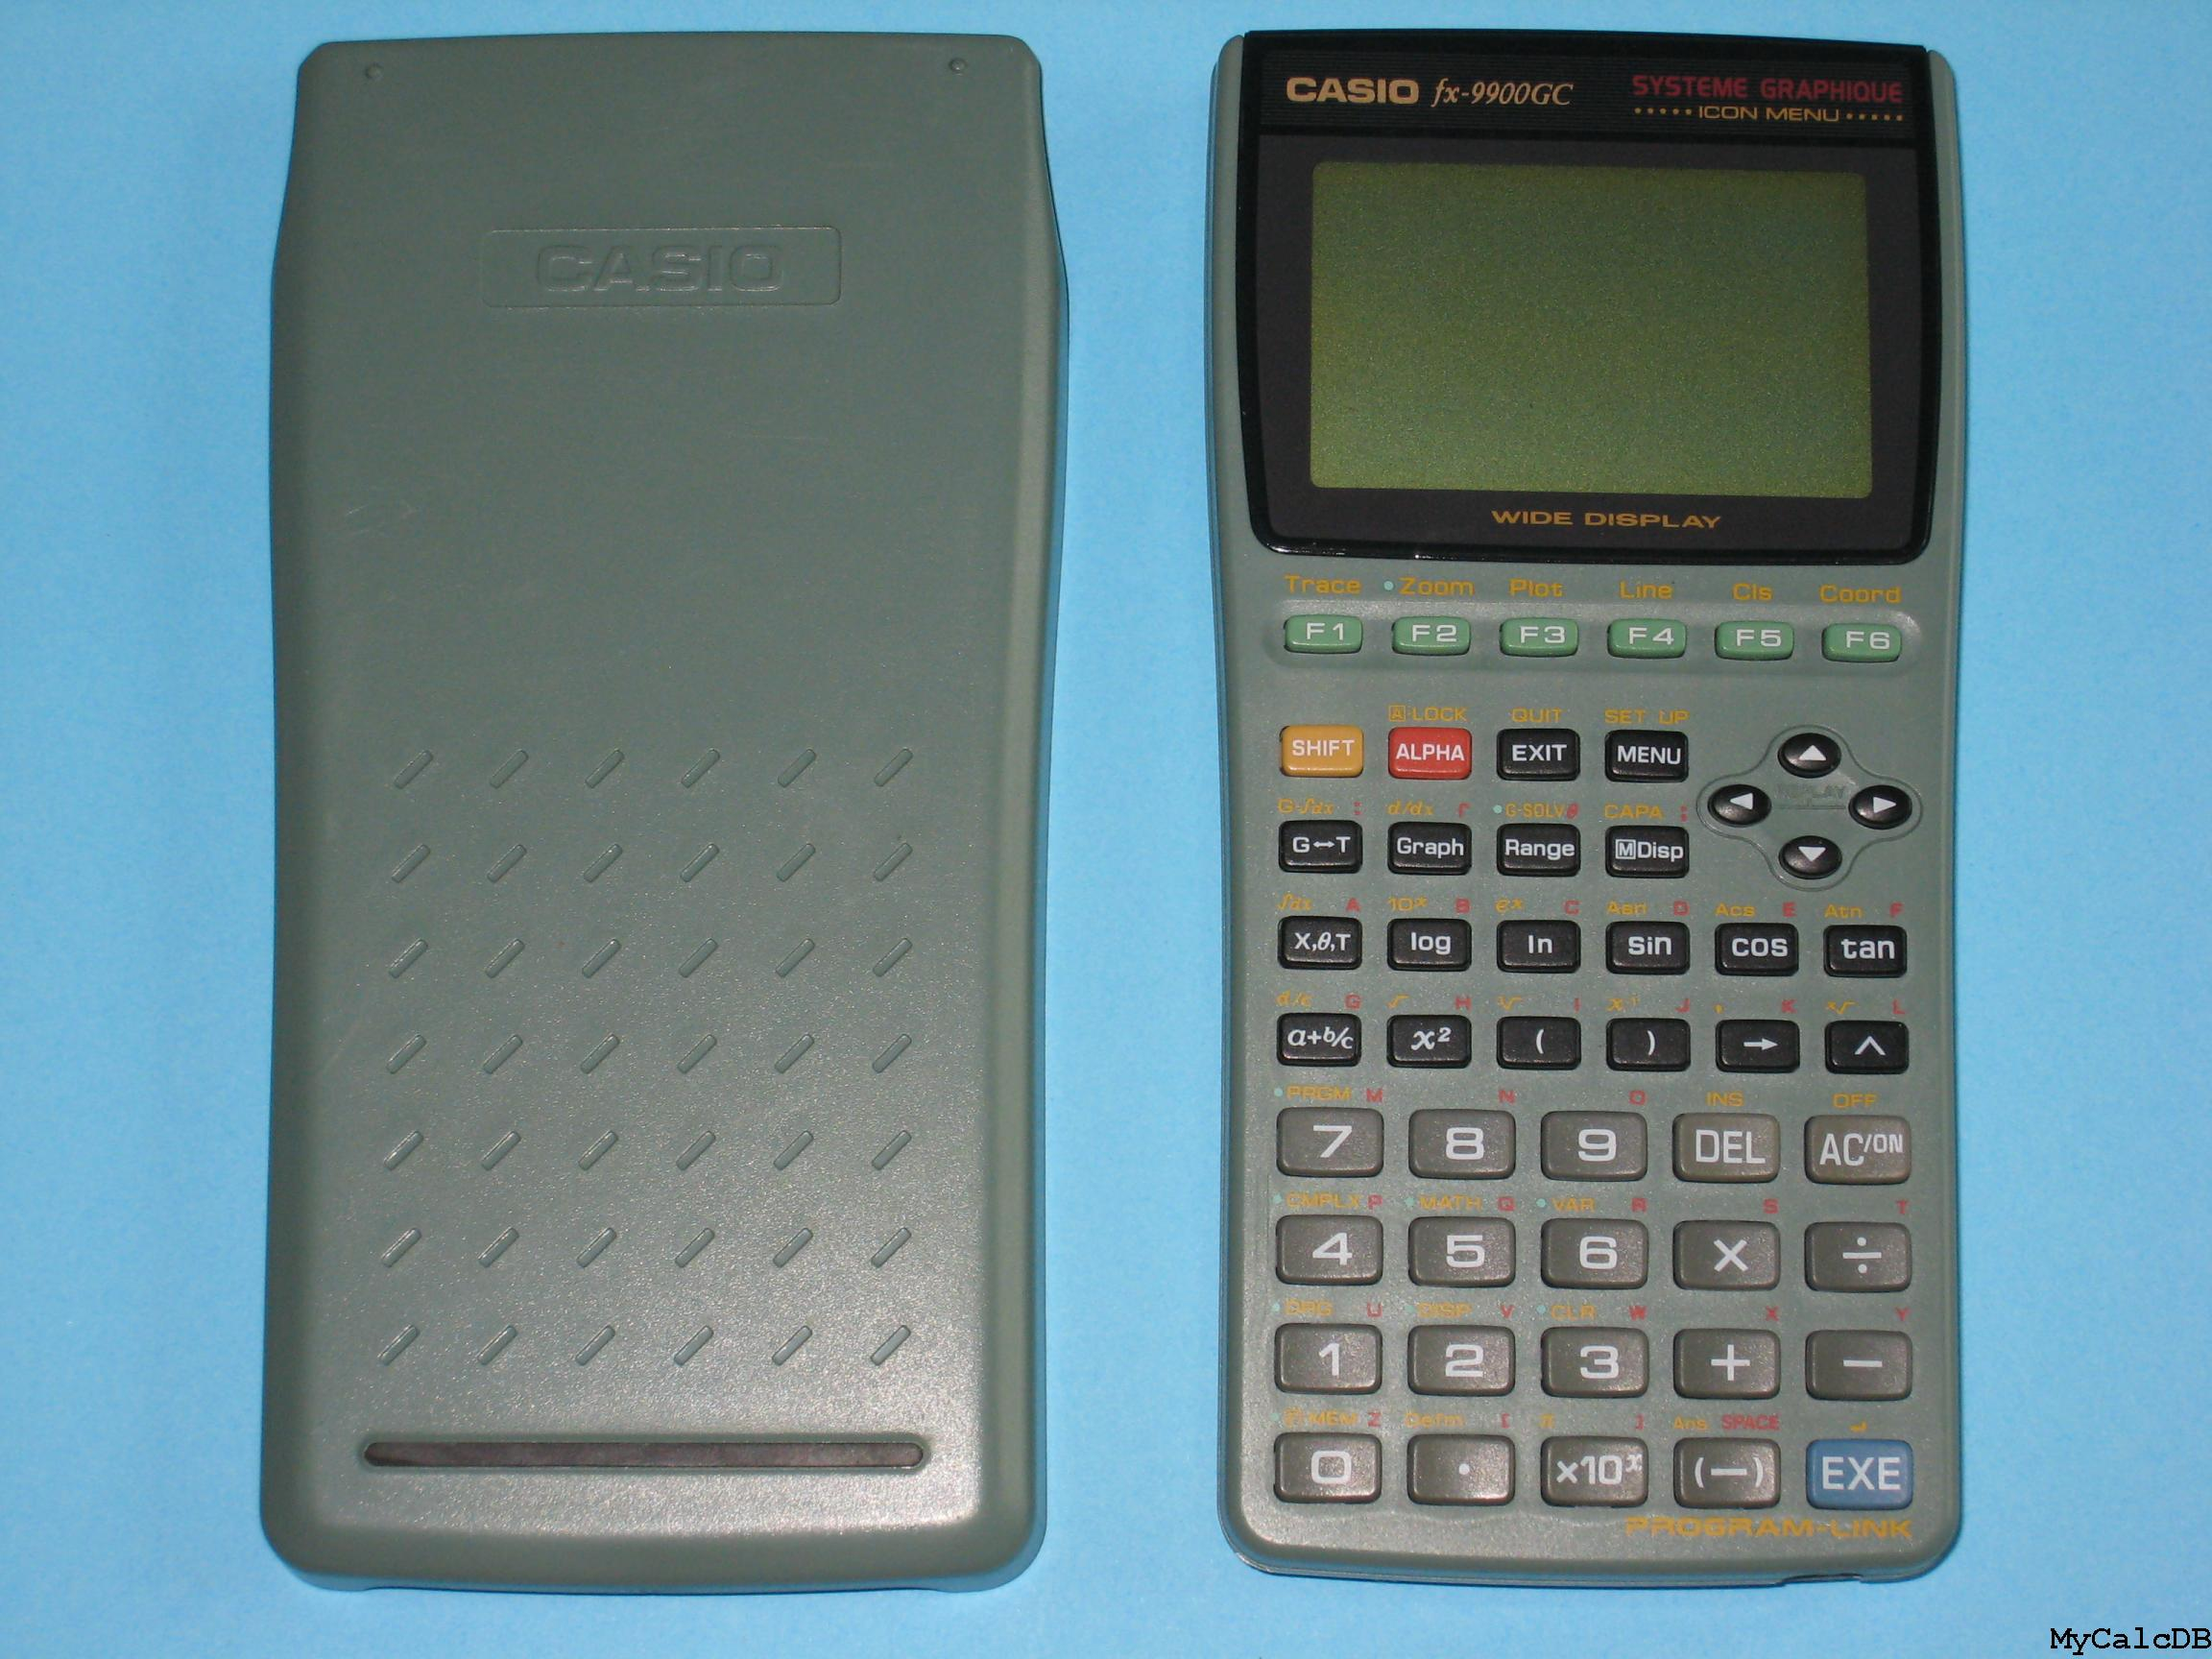 Casio fx-9900GC